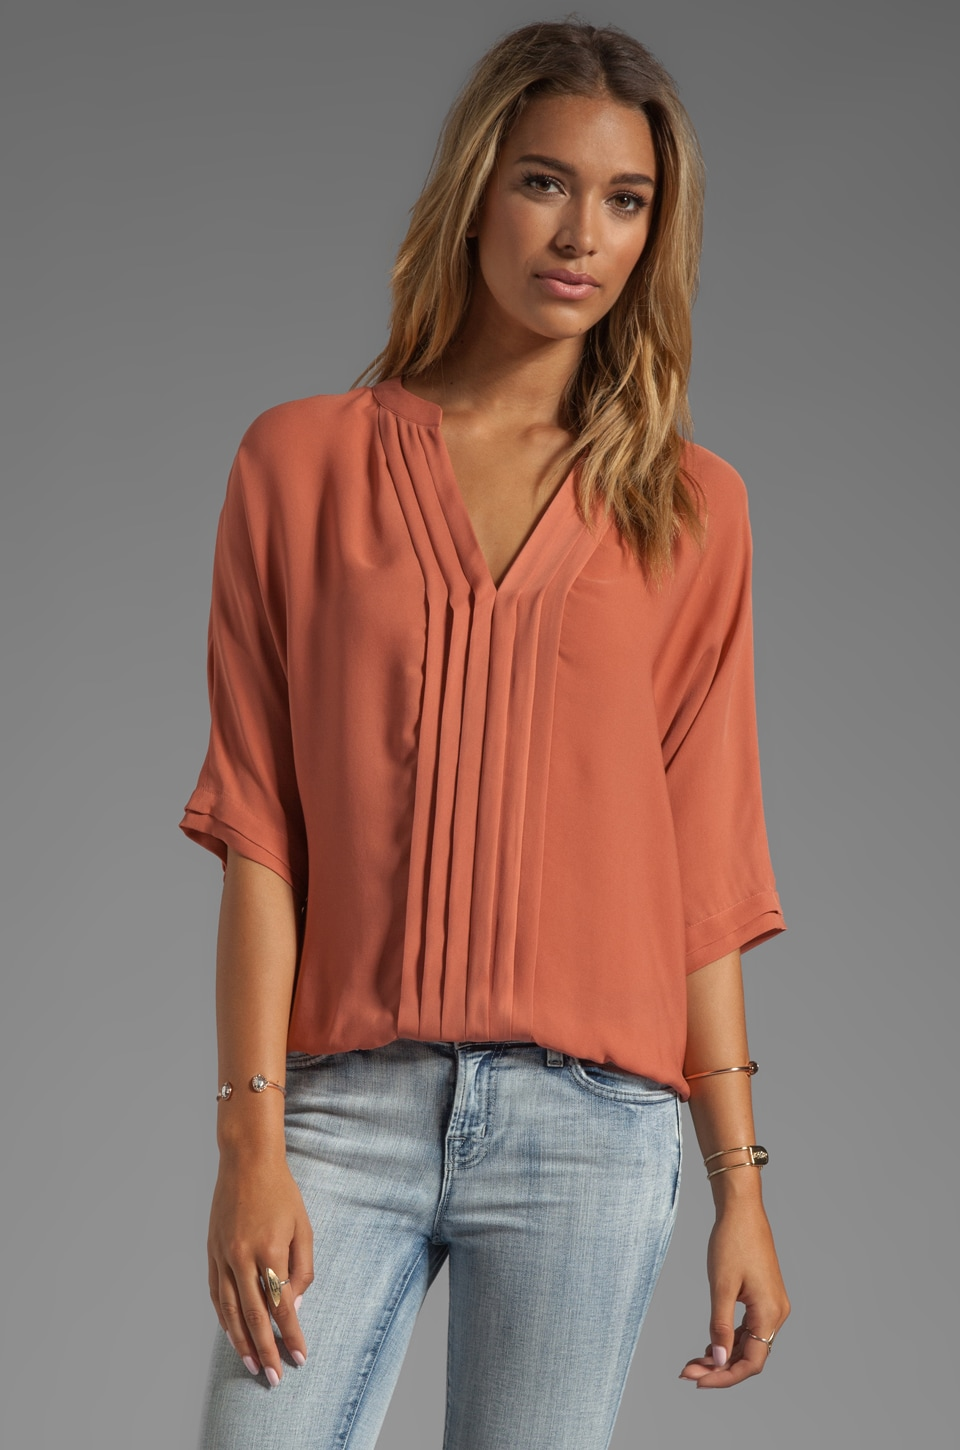 Joie Matte Silk Marru Top in Clay